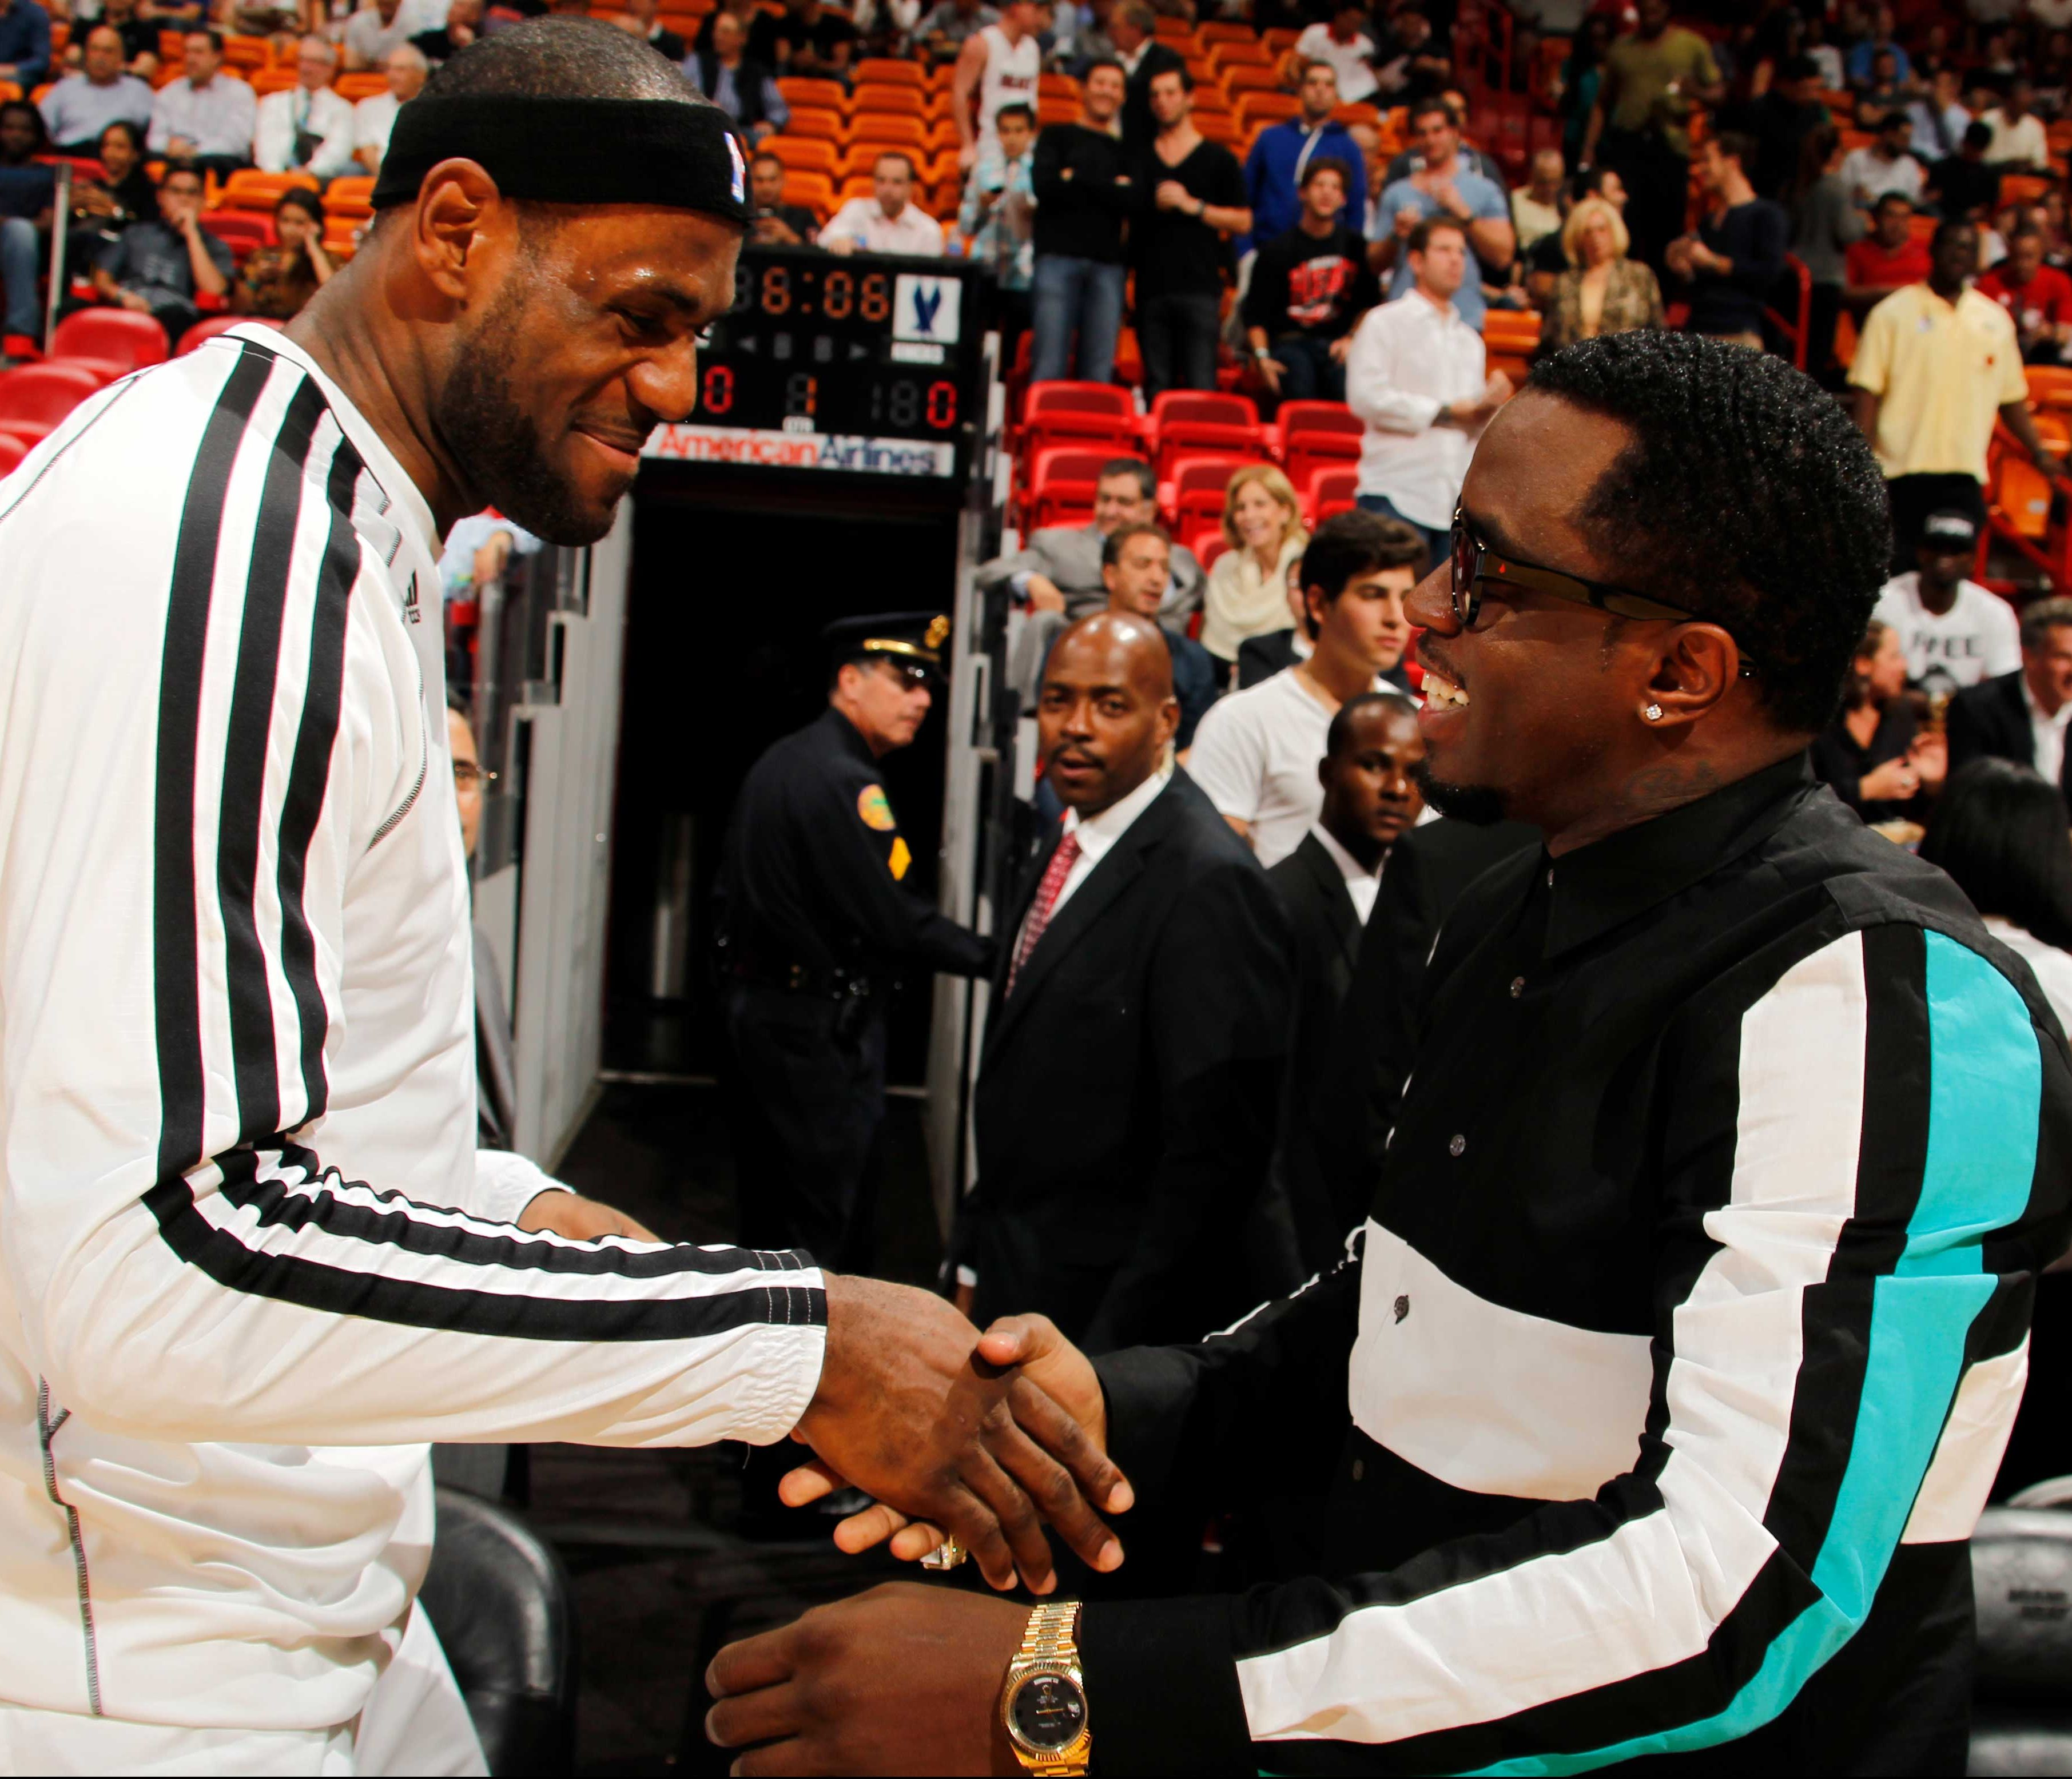 LeBron James  6 of the Miami Heat speaks with Recording Artist Sean P.  Diddy Combs prior to the New York Knicks  cbc58563f